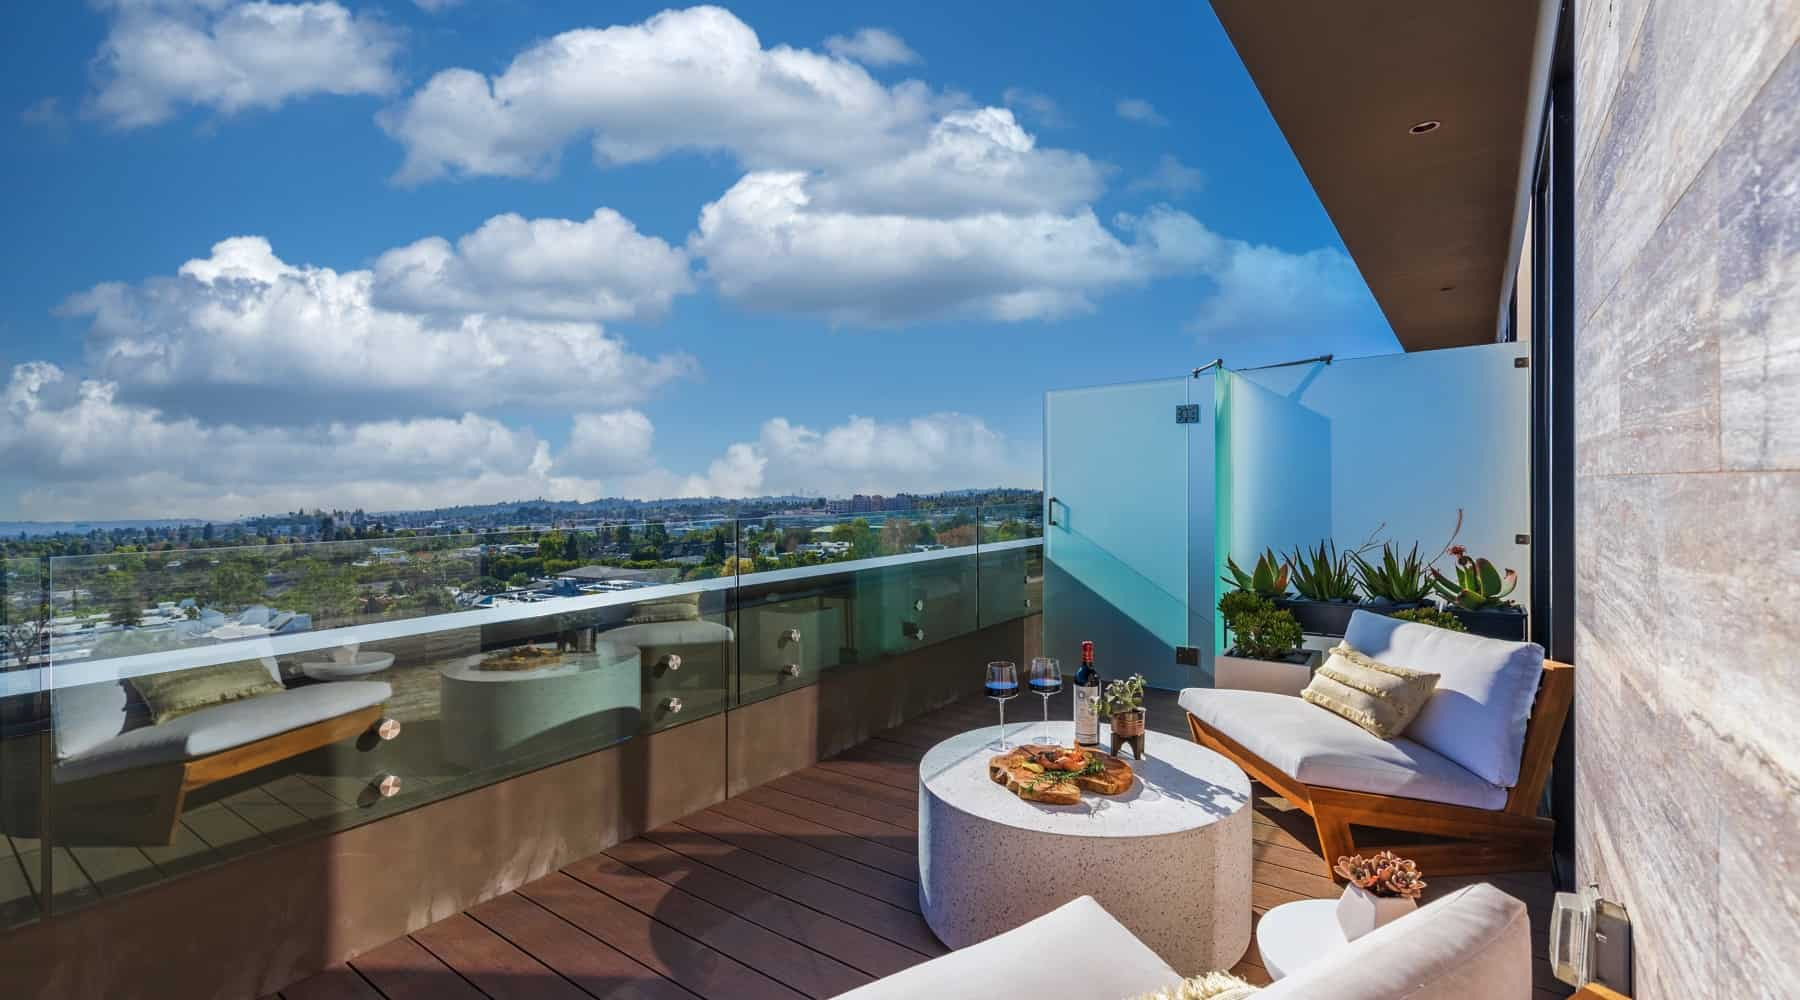 Penthouse_6_Deck_Wine_Appetizers_View